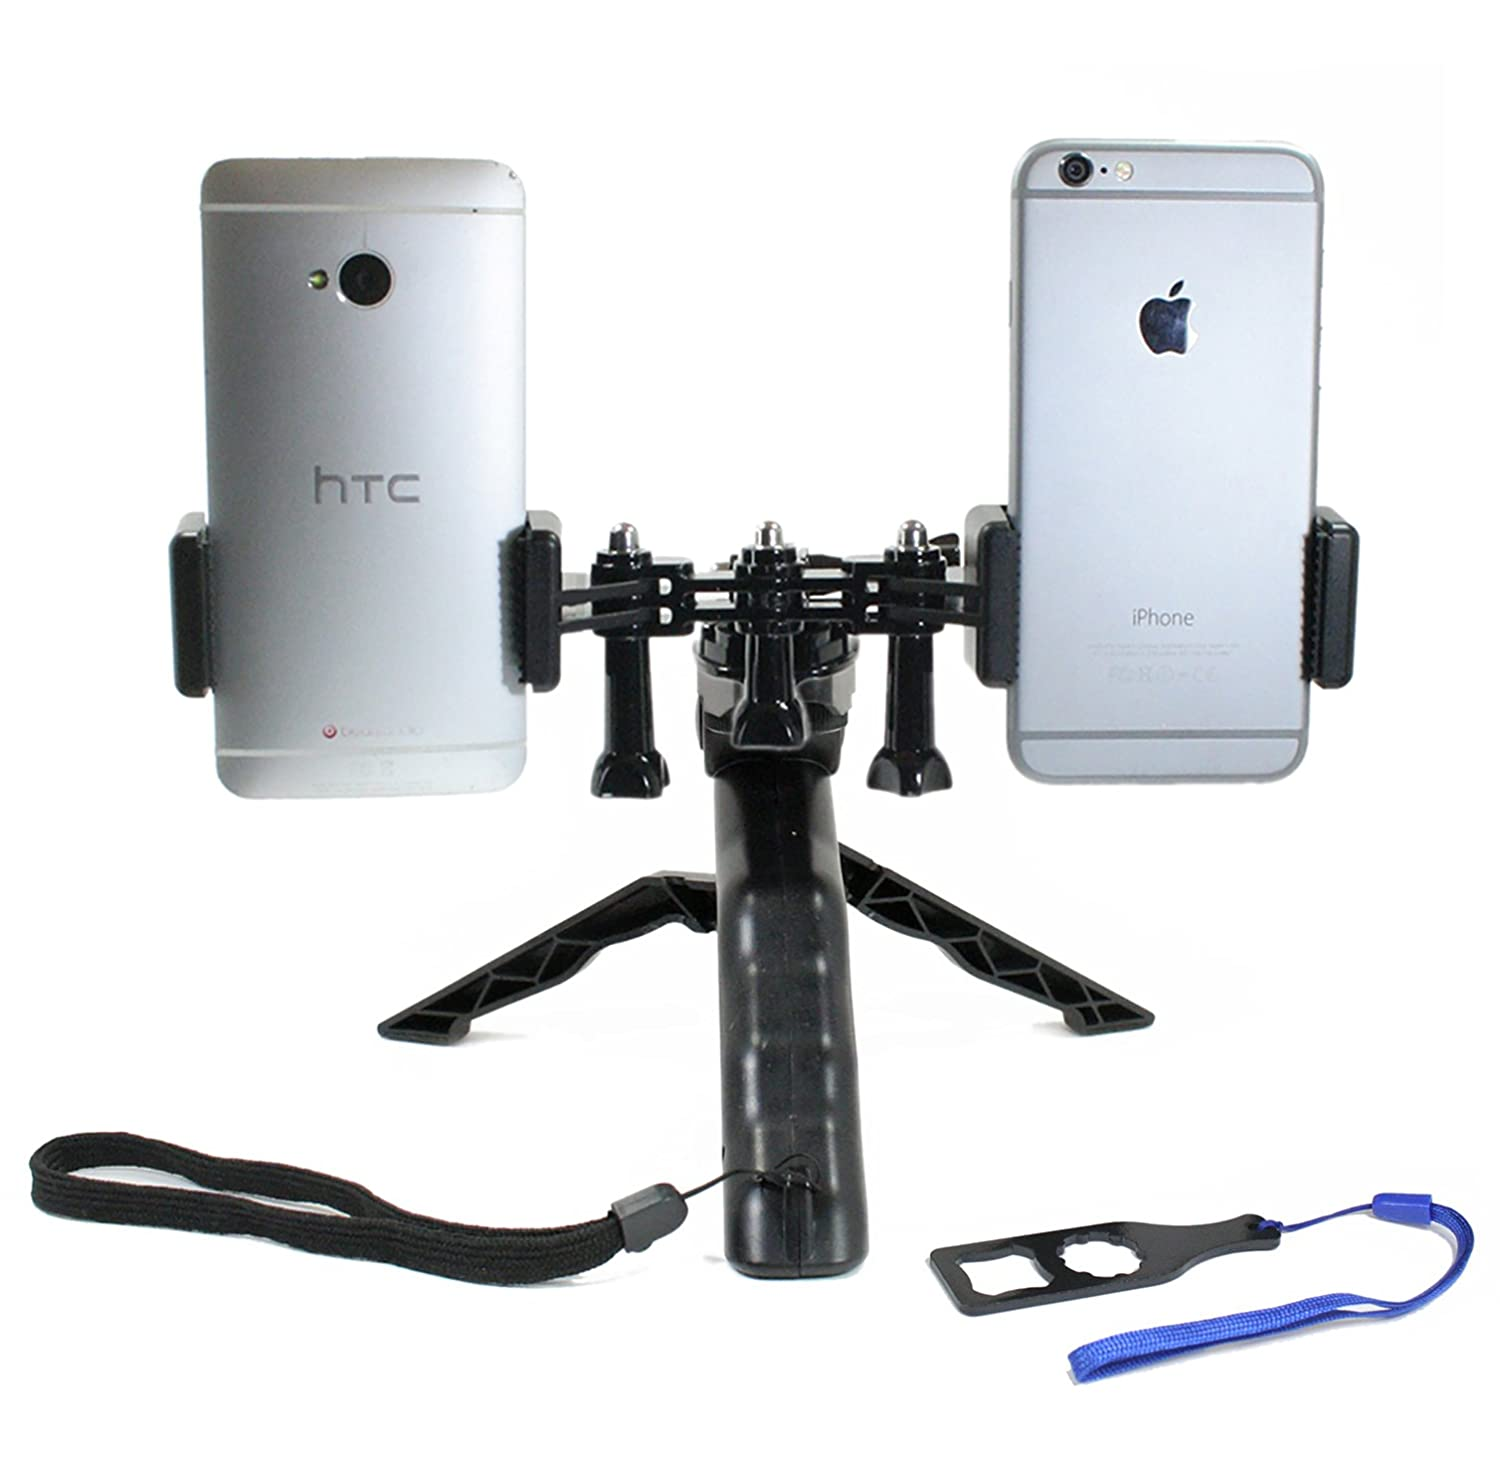 Livestream Gear - Dual Device Tripod Setup for Streaming or Video Recording with 2 Phones. Also Works with GoPro. Any Device, Multiple Orientations. (2 Device Tripod)